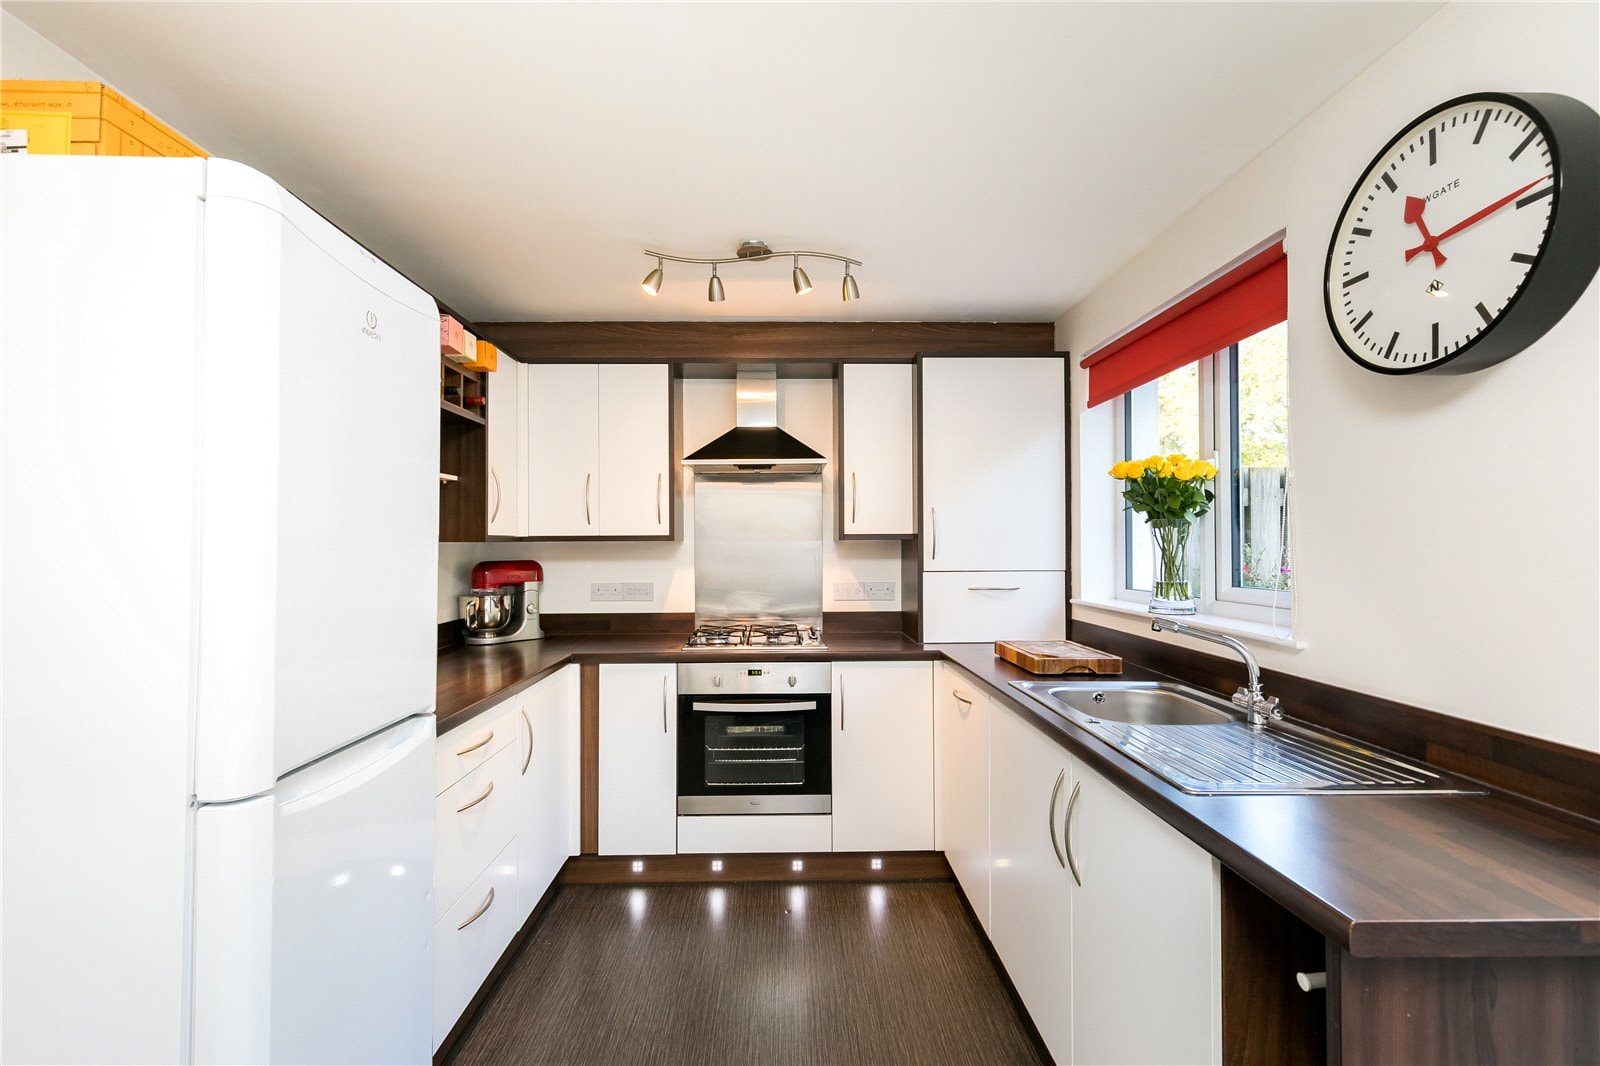 38 Jesmond Grange kitchen